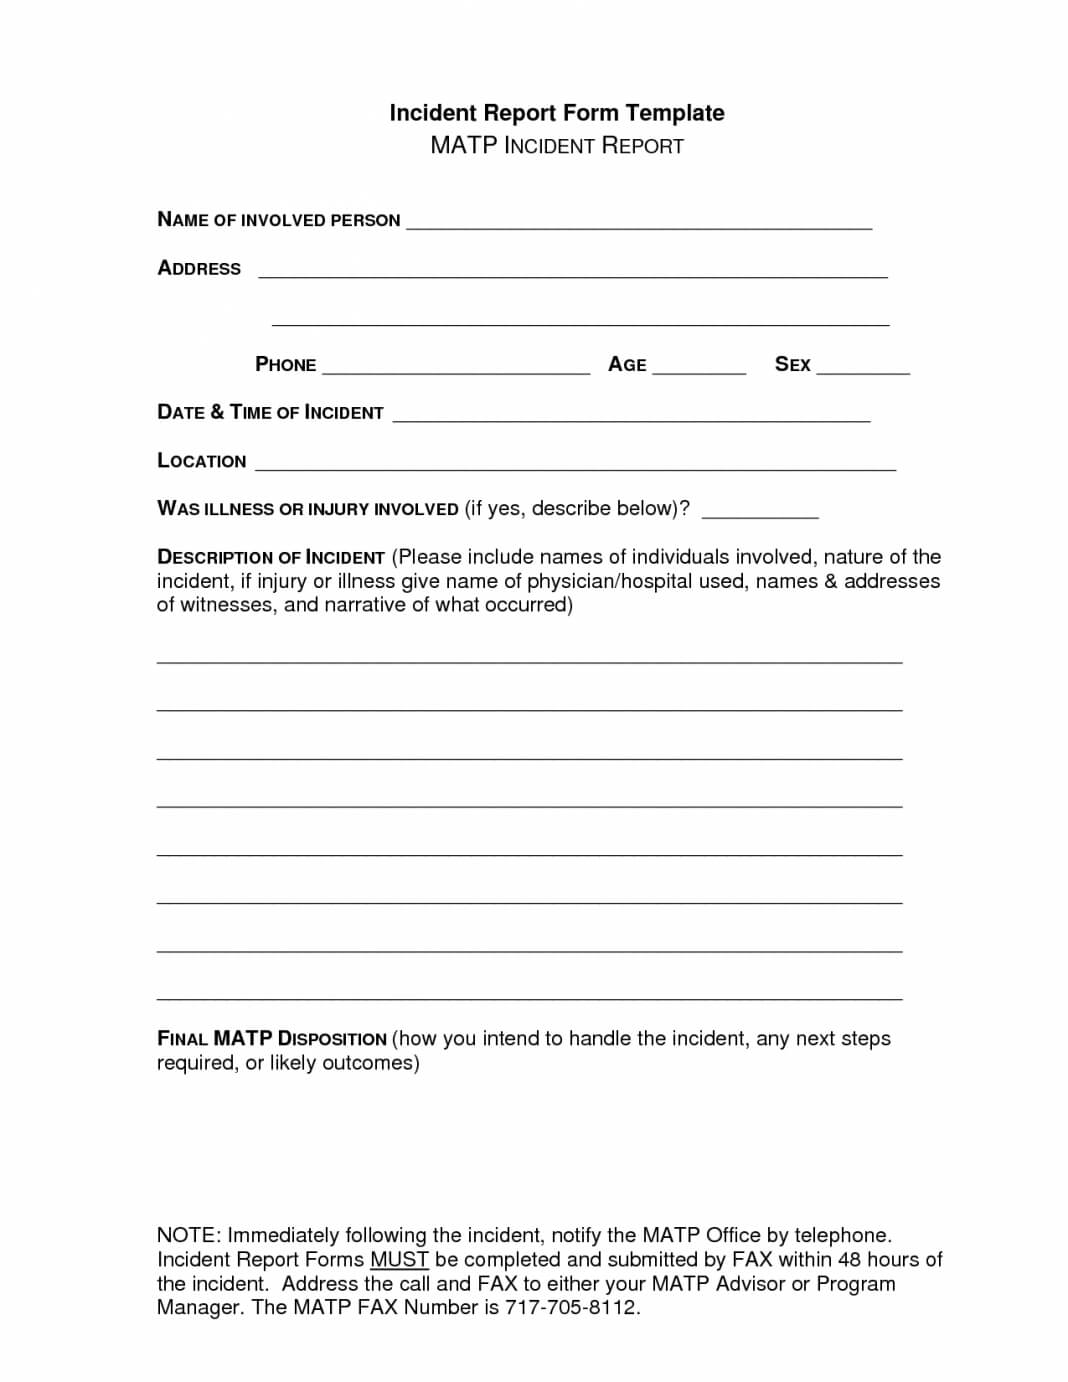 Riding Ool Accident Report Forms Form Pdf Sample Letter Inside School Incident Report Template